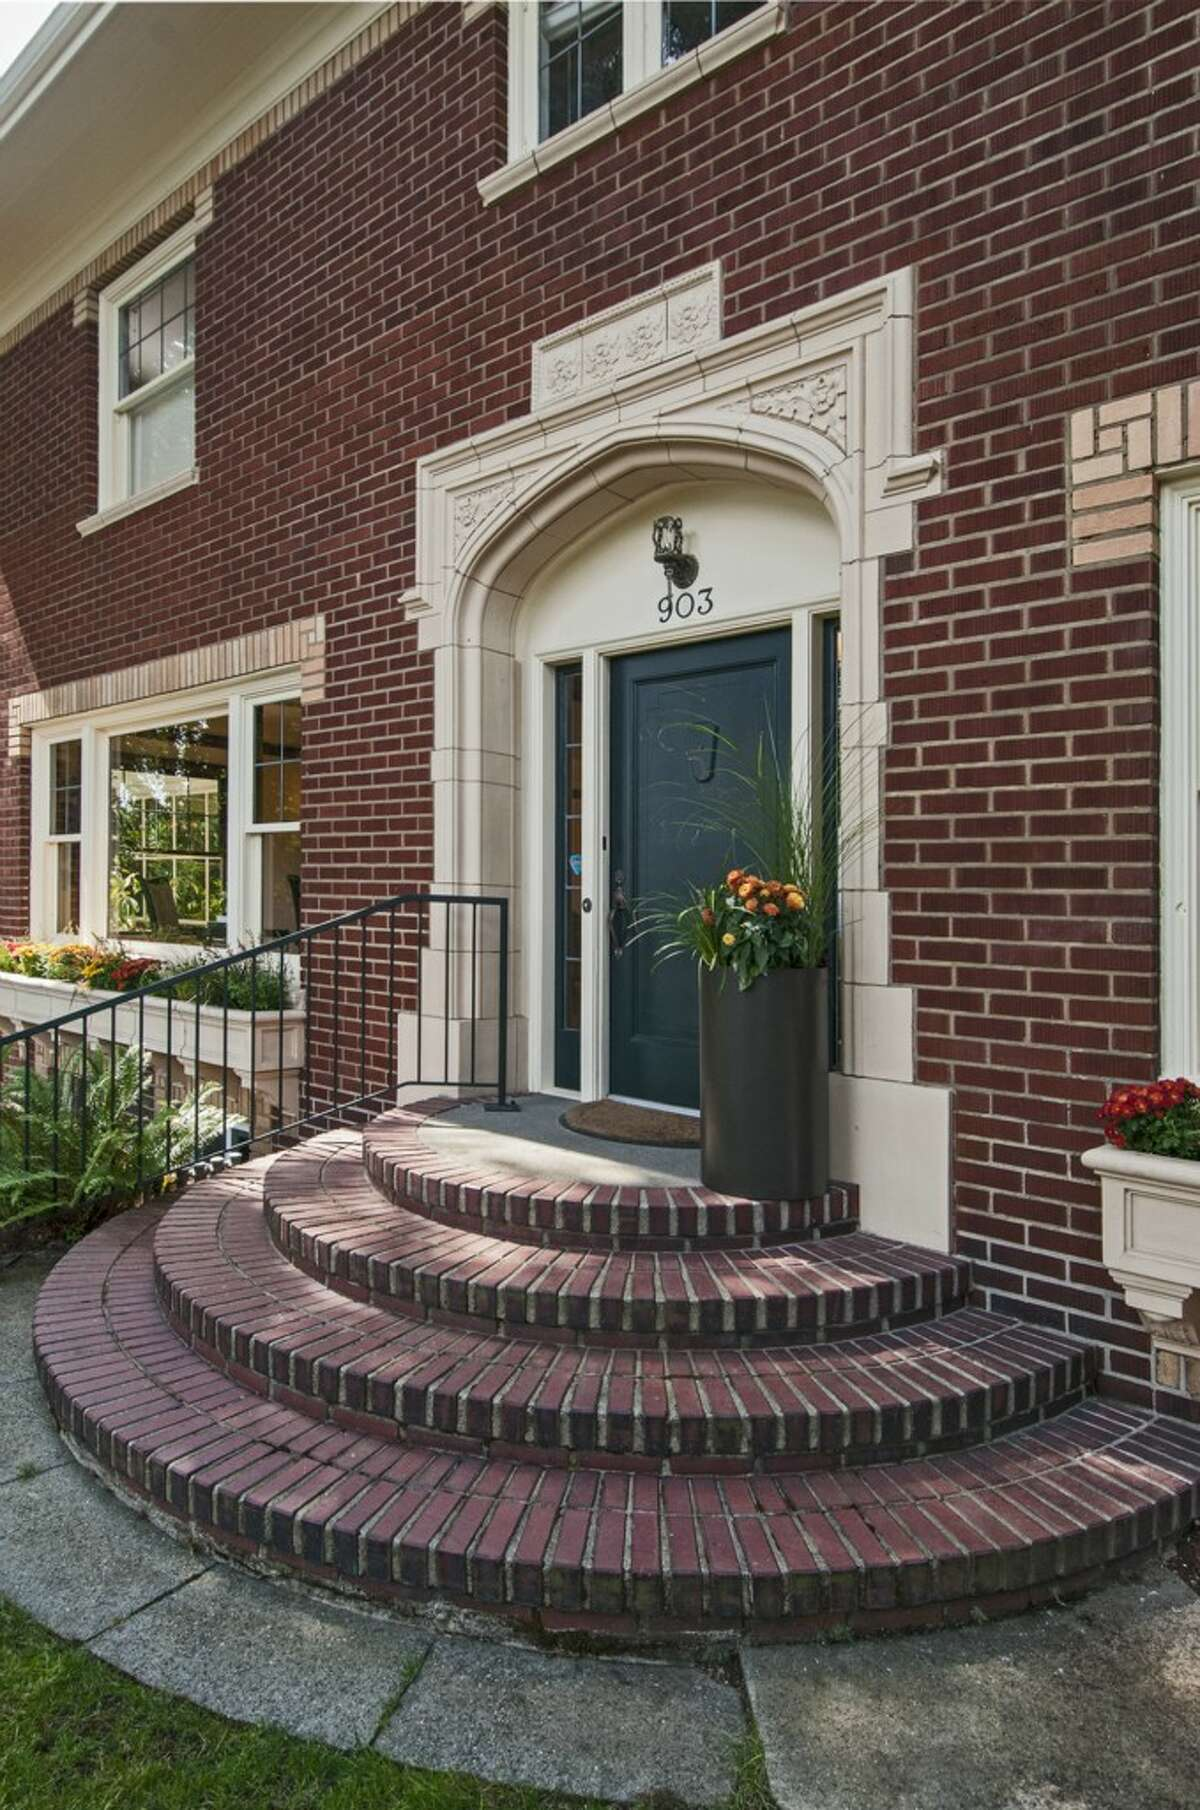 Entry of 903 22nd Ave. E. It's listed for $1.829 million.